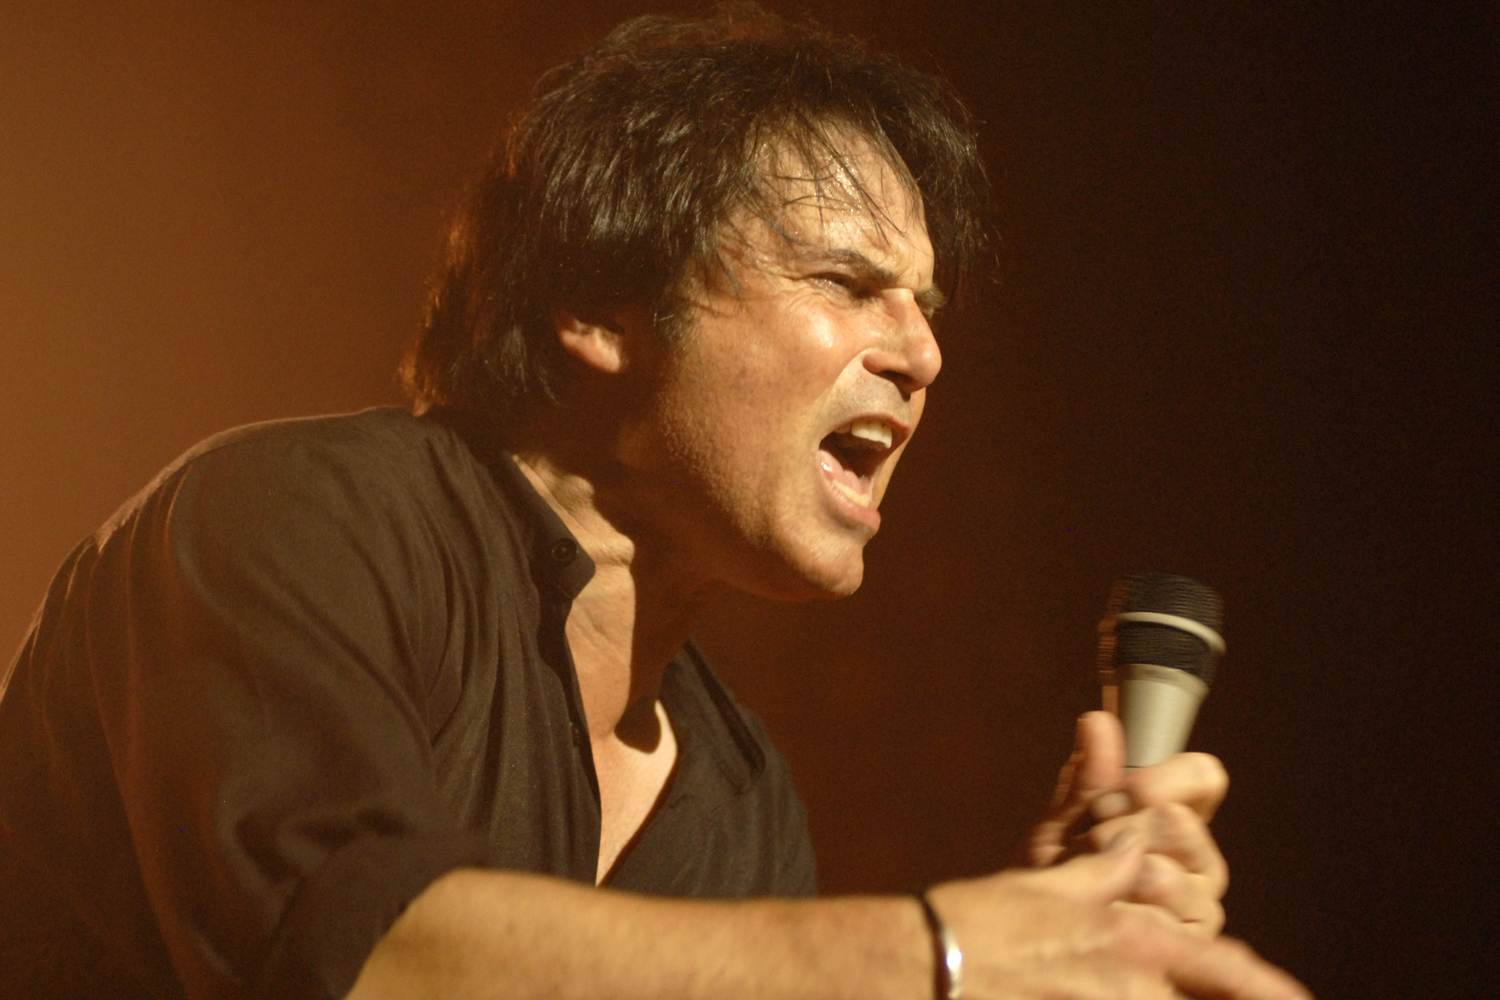 Jimi Jamison performing in Nashville, Tennessee, in 2009.